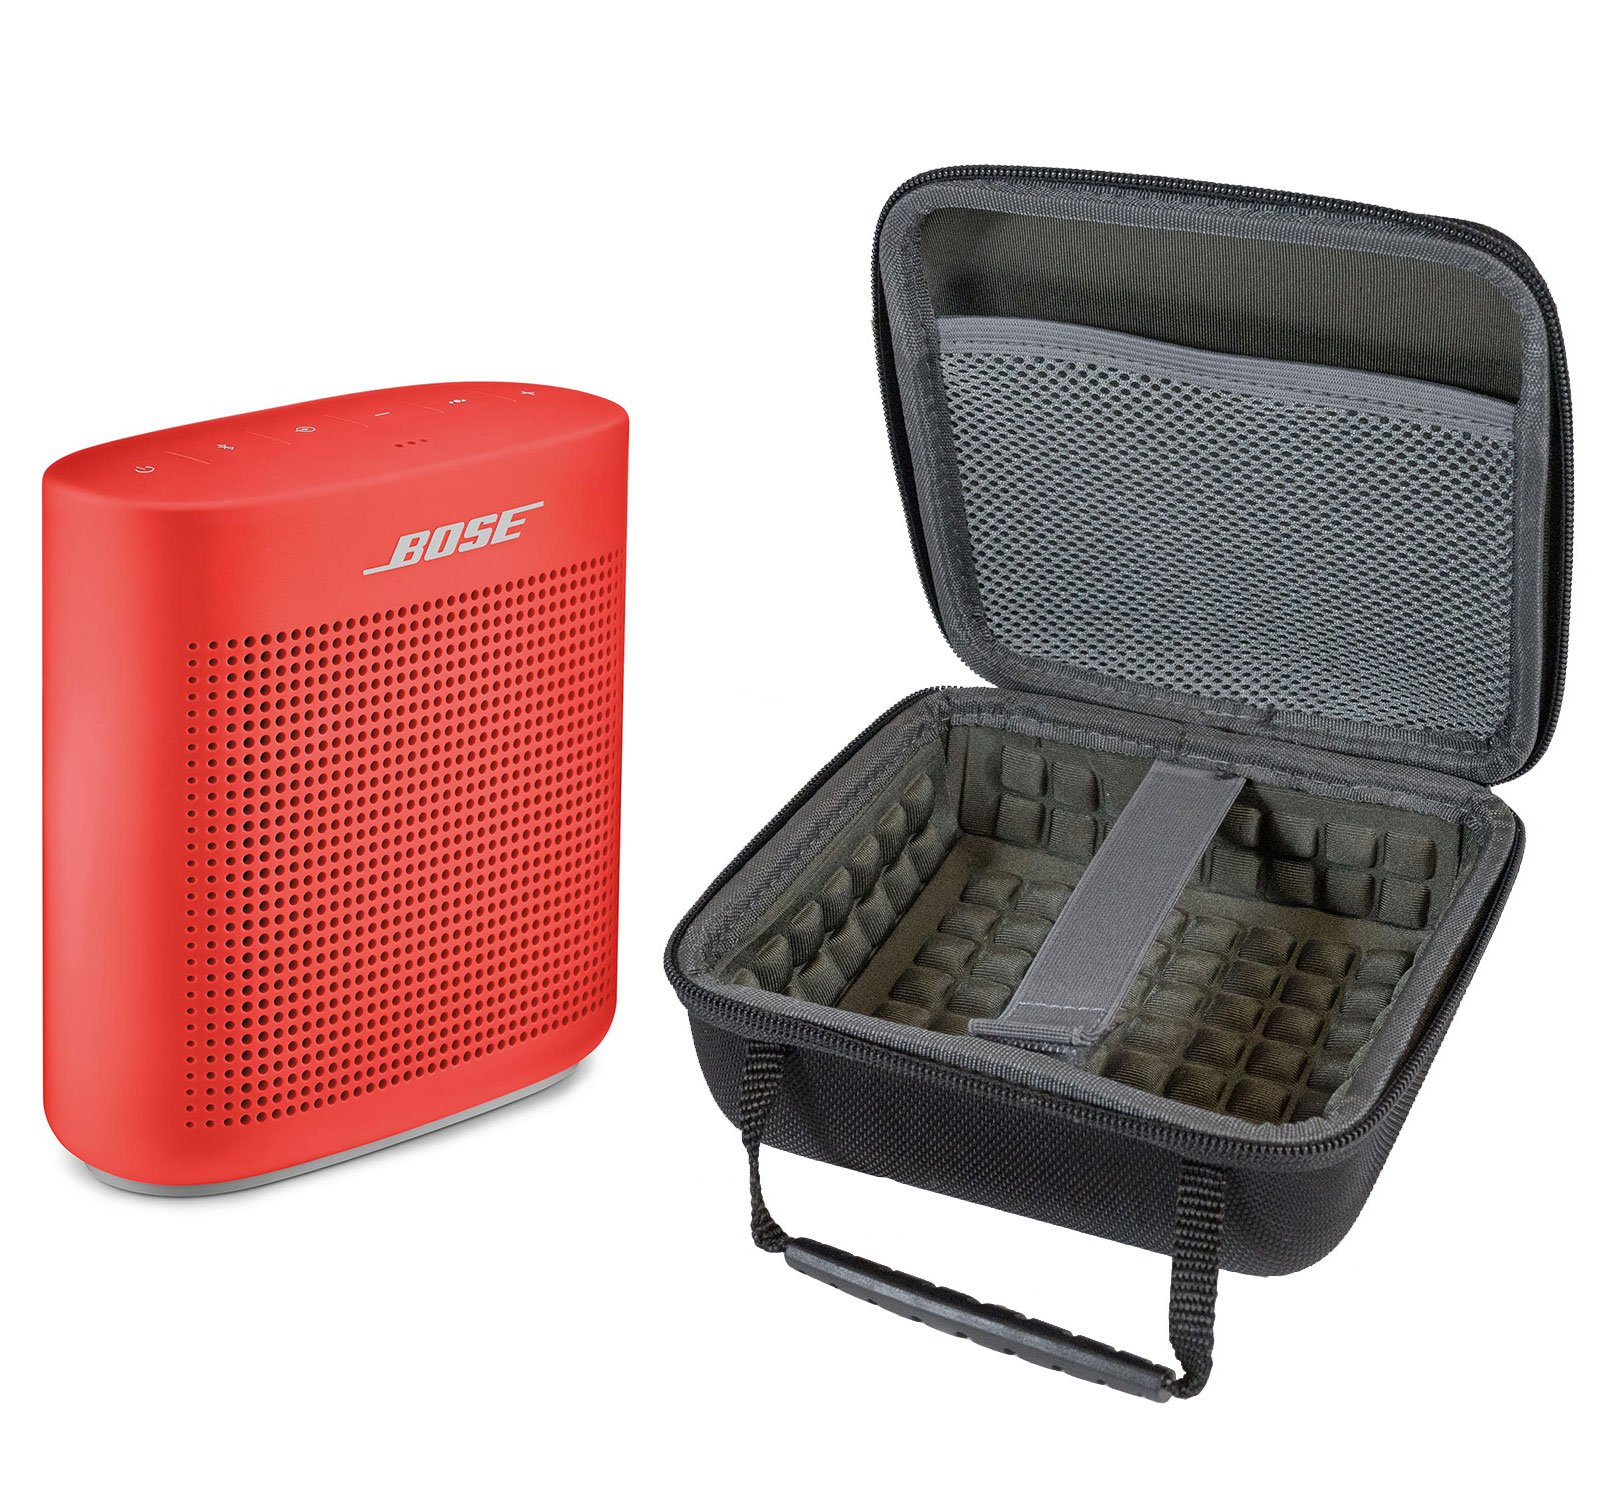 Bose SoundLink Color II Bluetooth Speaker, Coral Red, with Portable Hardshell Travel Case by Bose